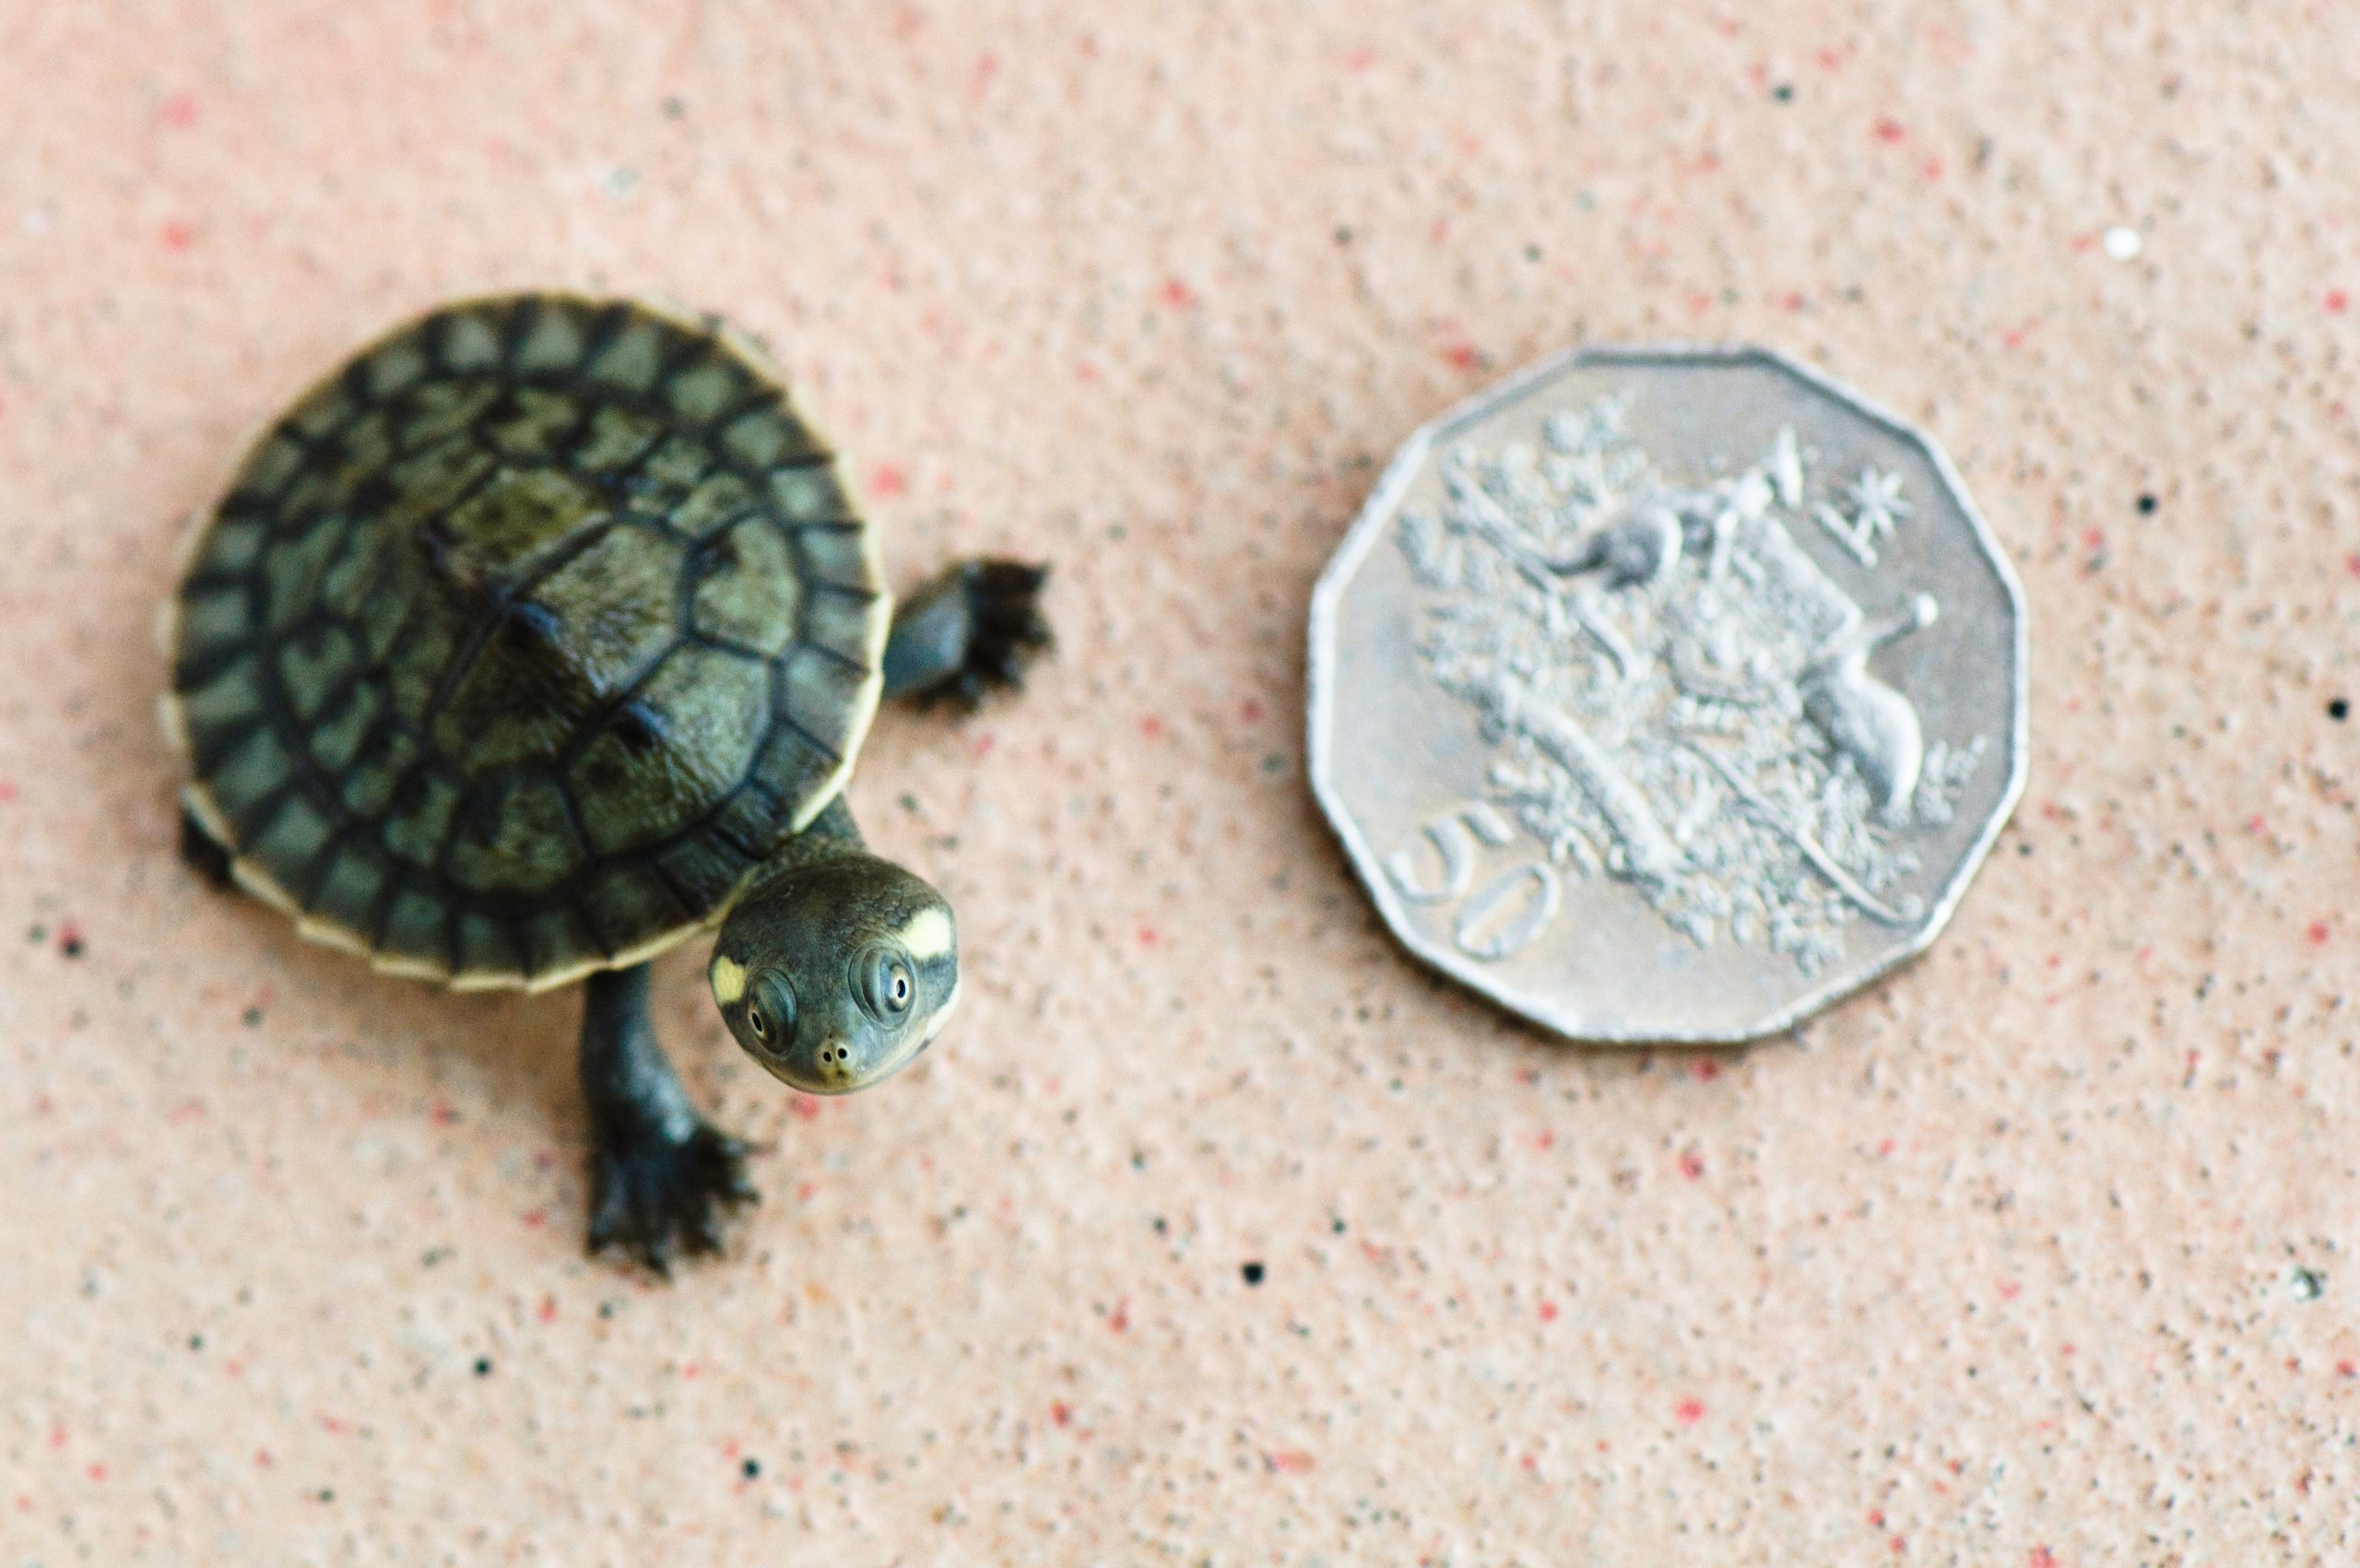 Baby turtle standing next to coin